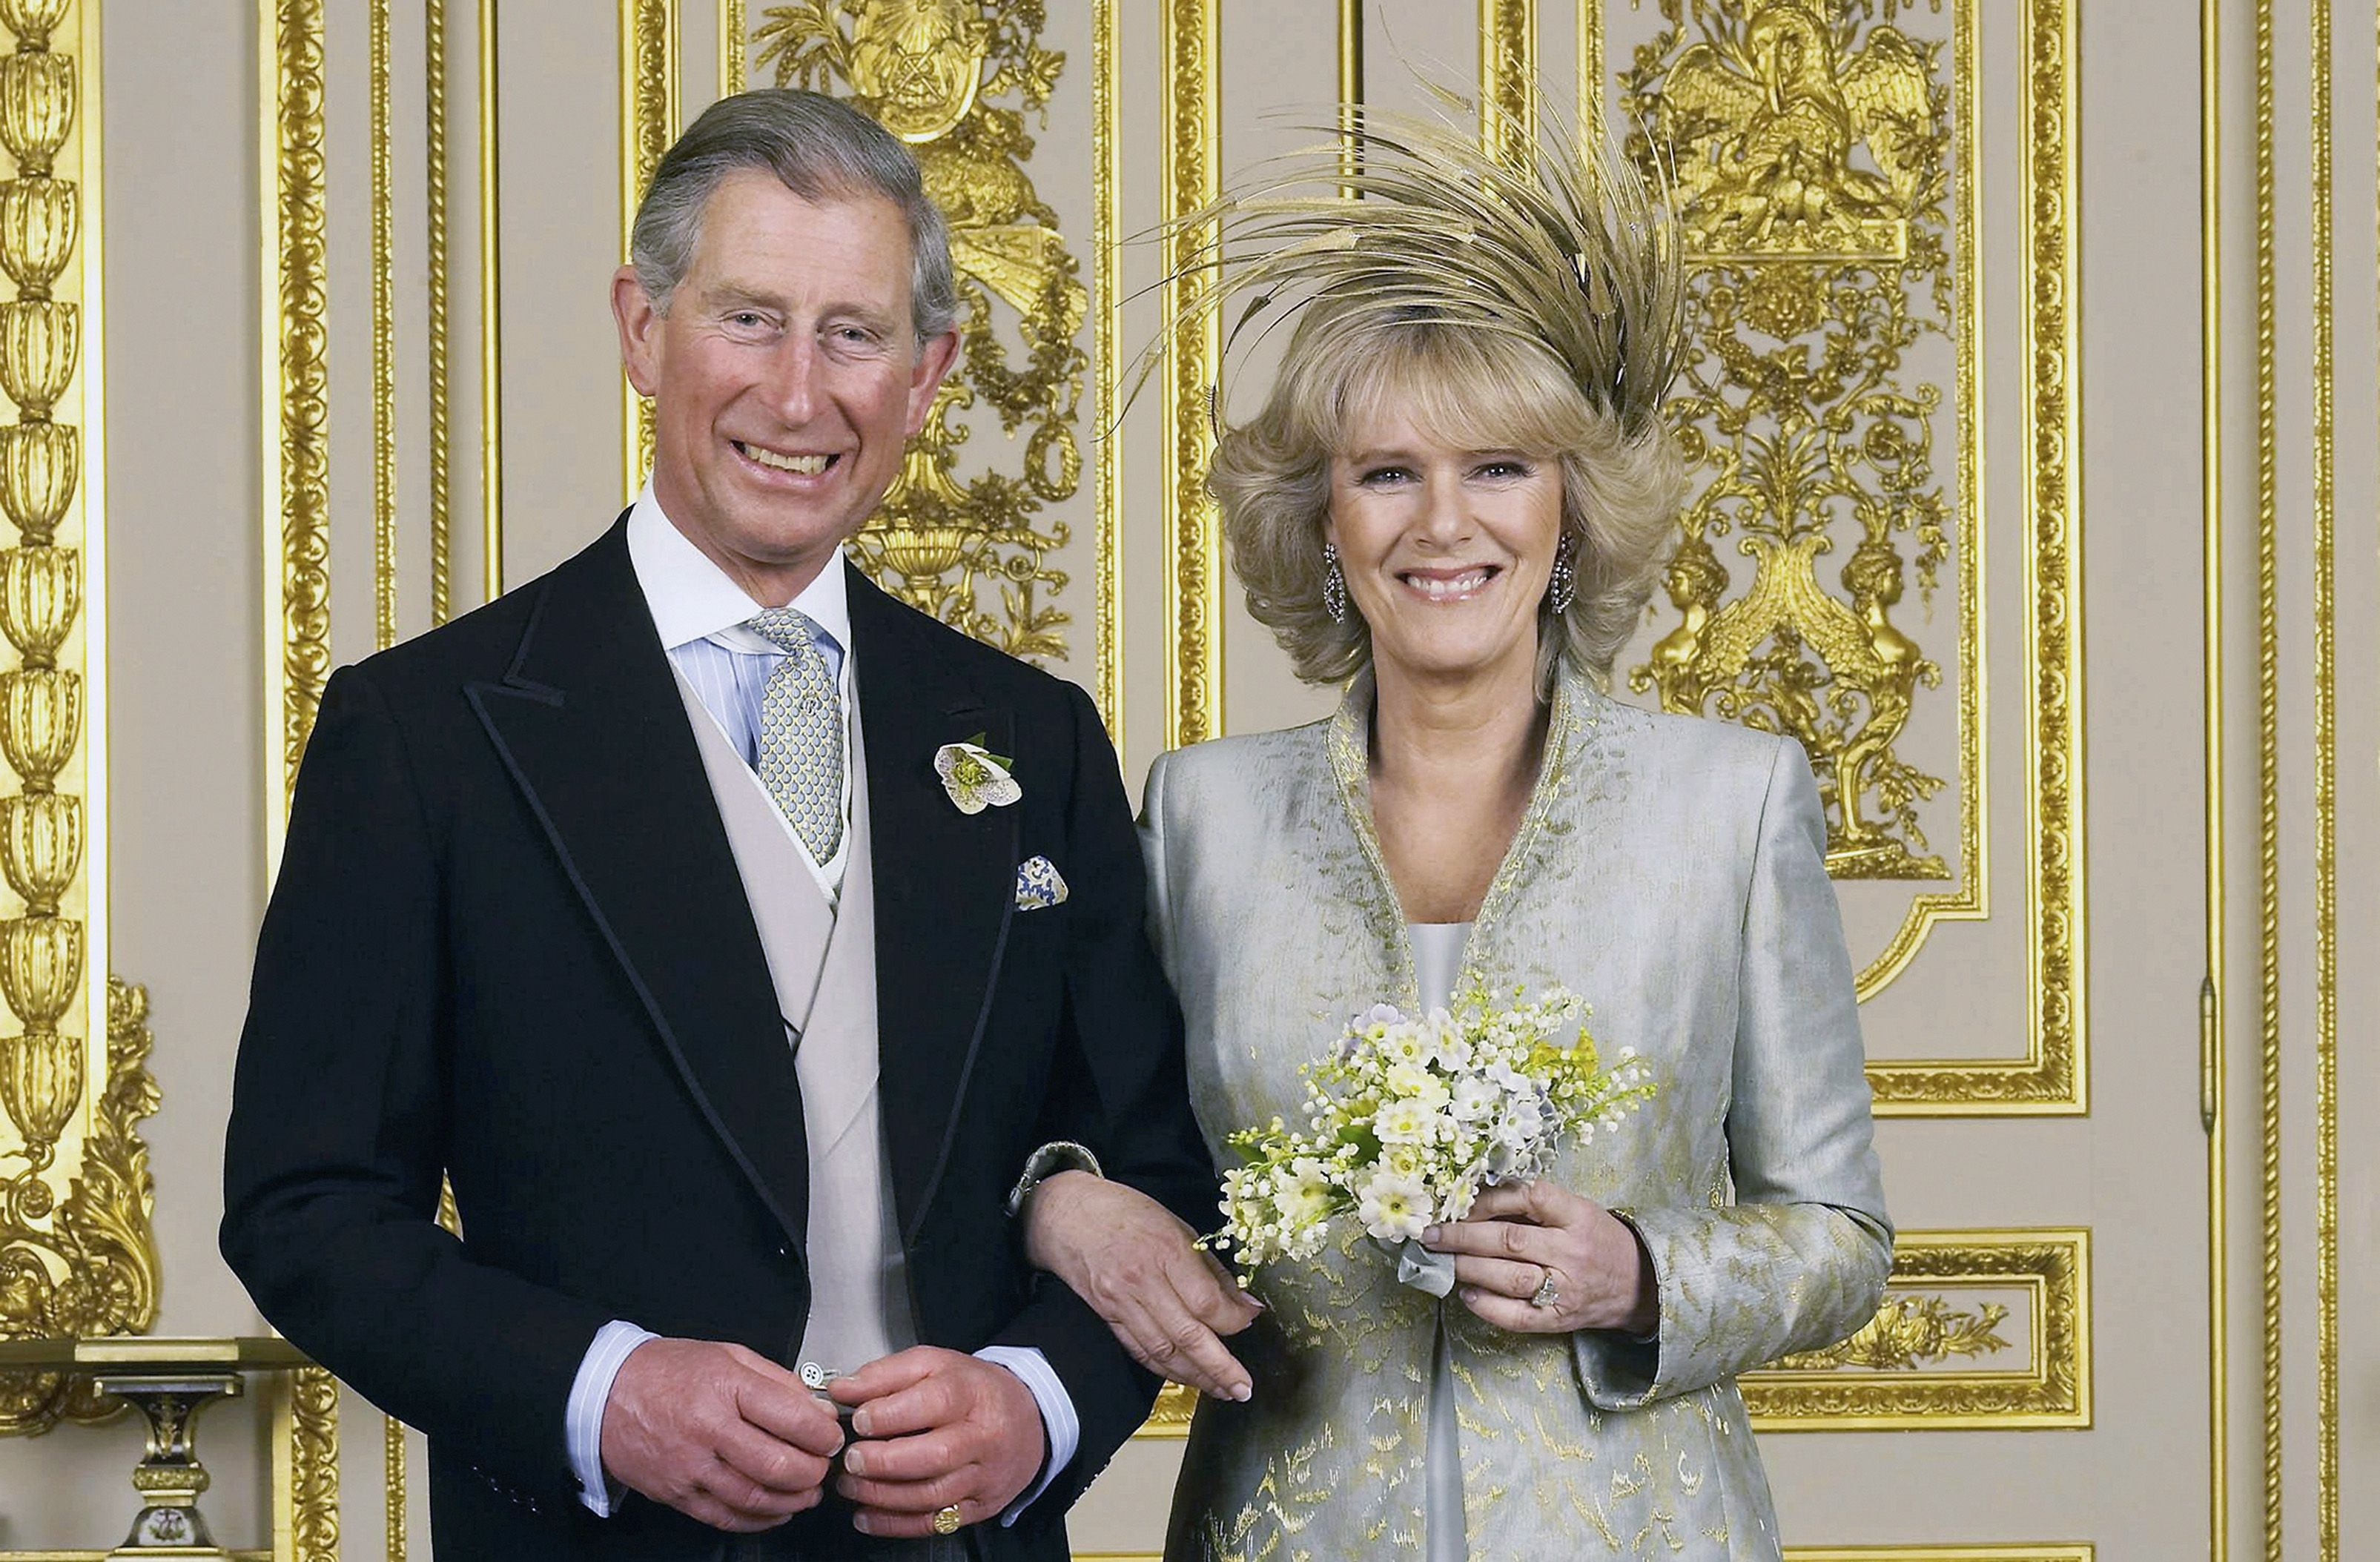 10 Facts About Camilla Parker Bowles, Duchess of Cornwall